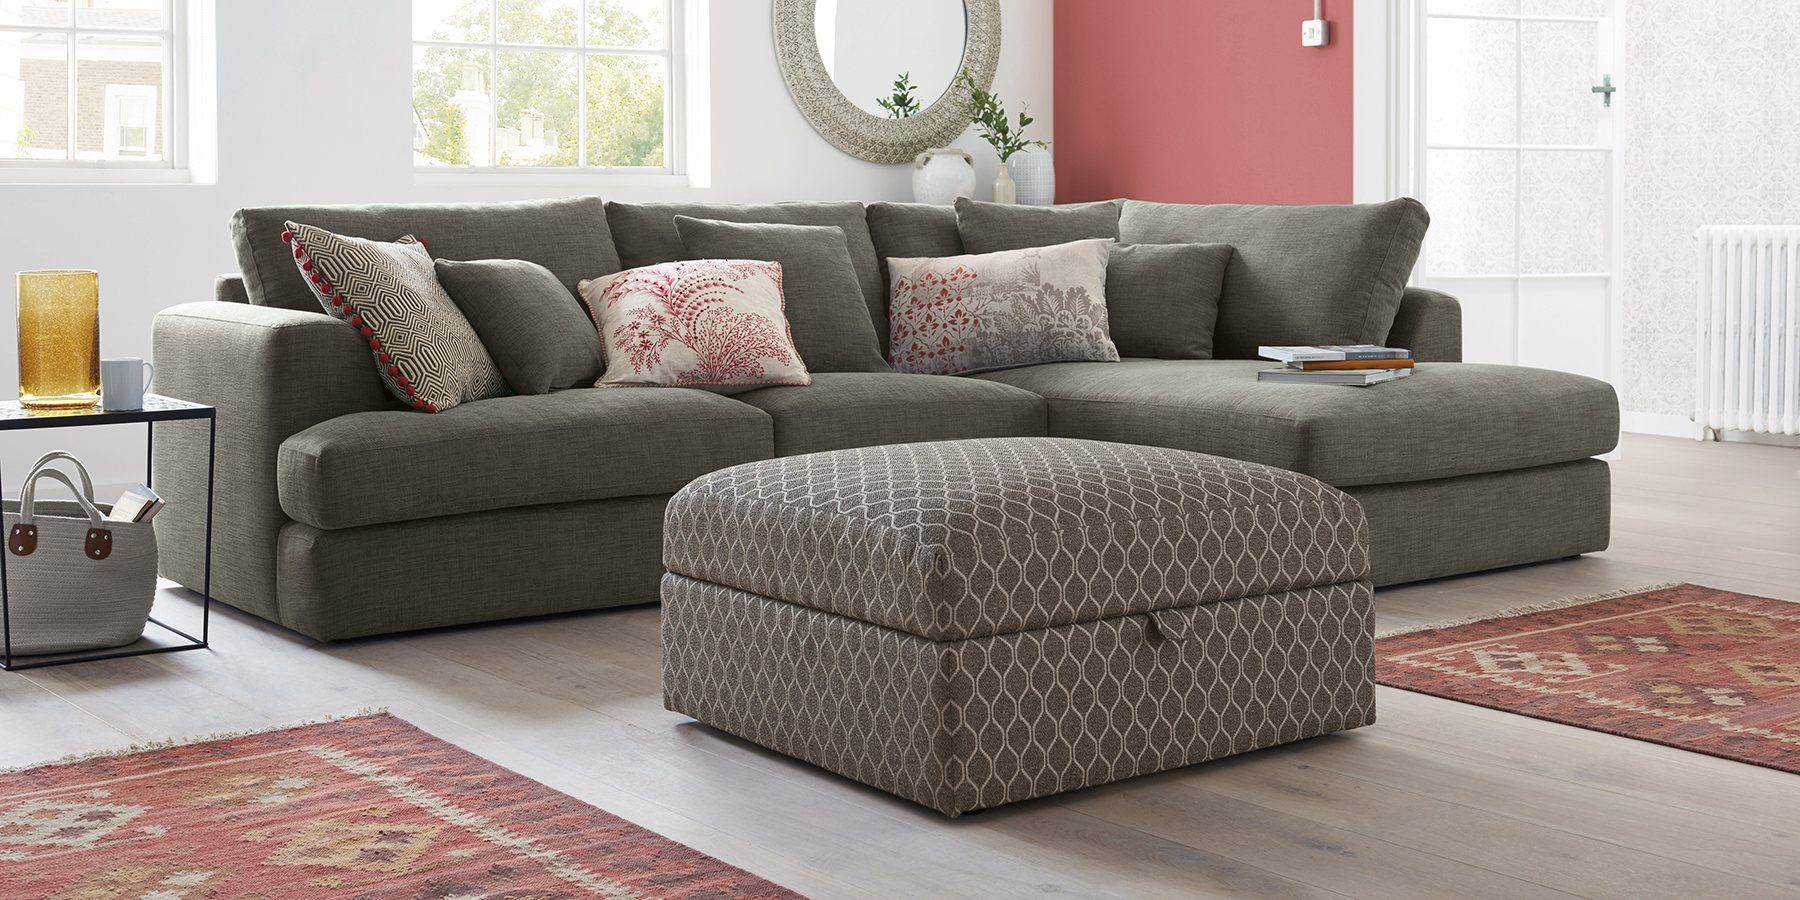 buy stratus ii extra large sofa 4 seats boucle blend dark grey from the next uk online shop. Black Bedroom Furniture Sets. Home Design Ideas